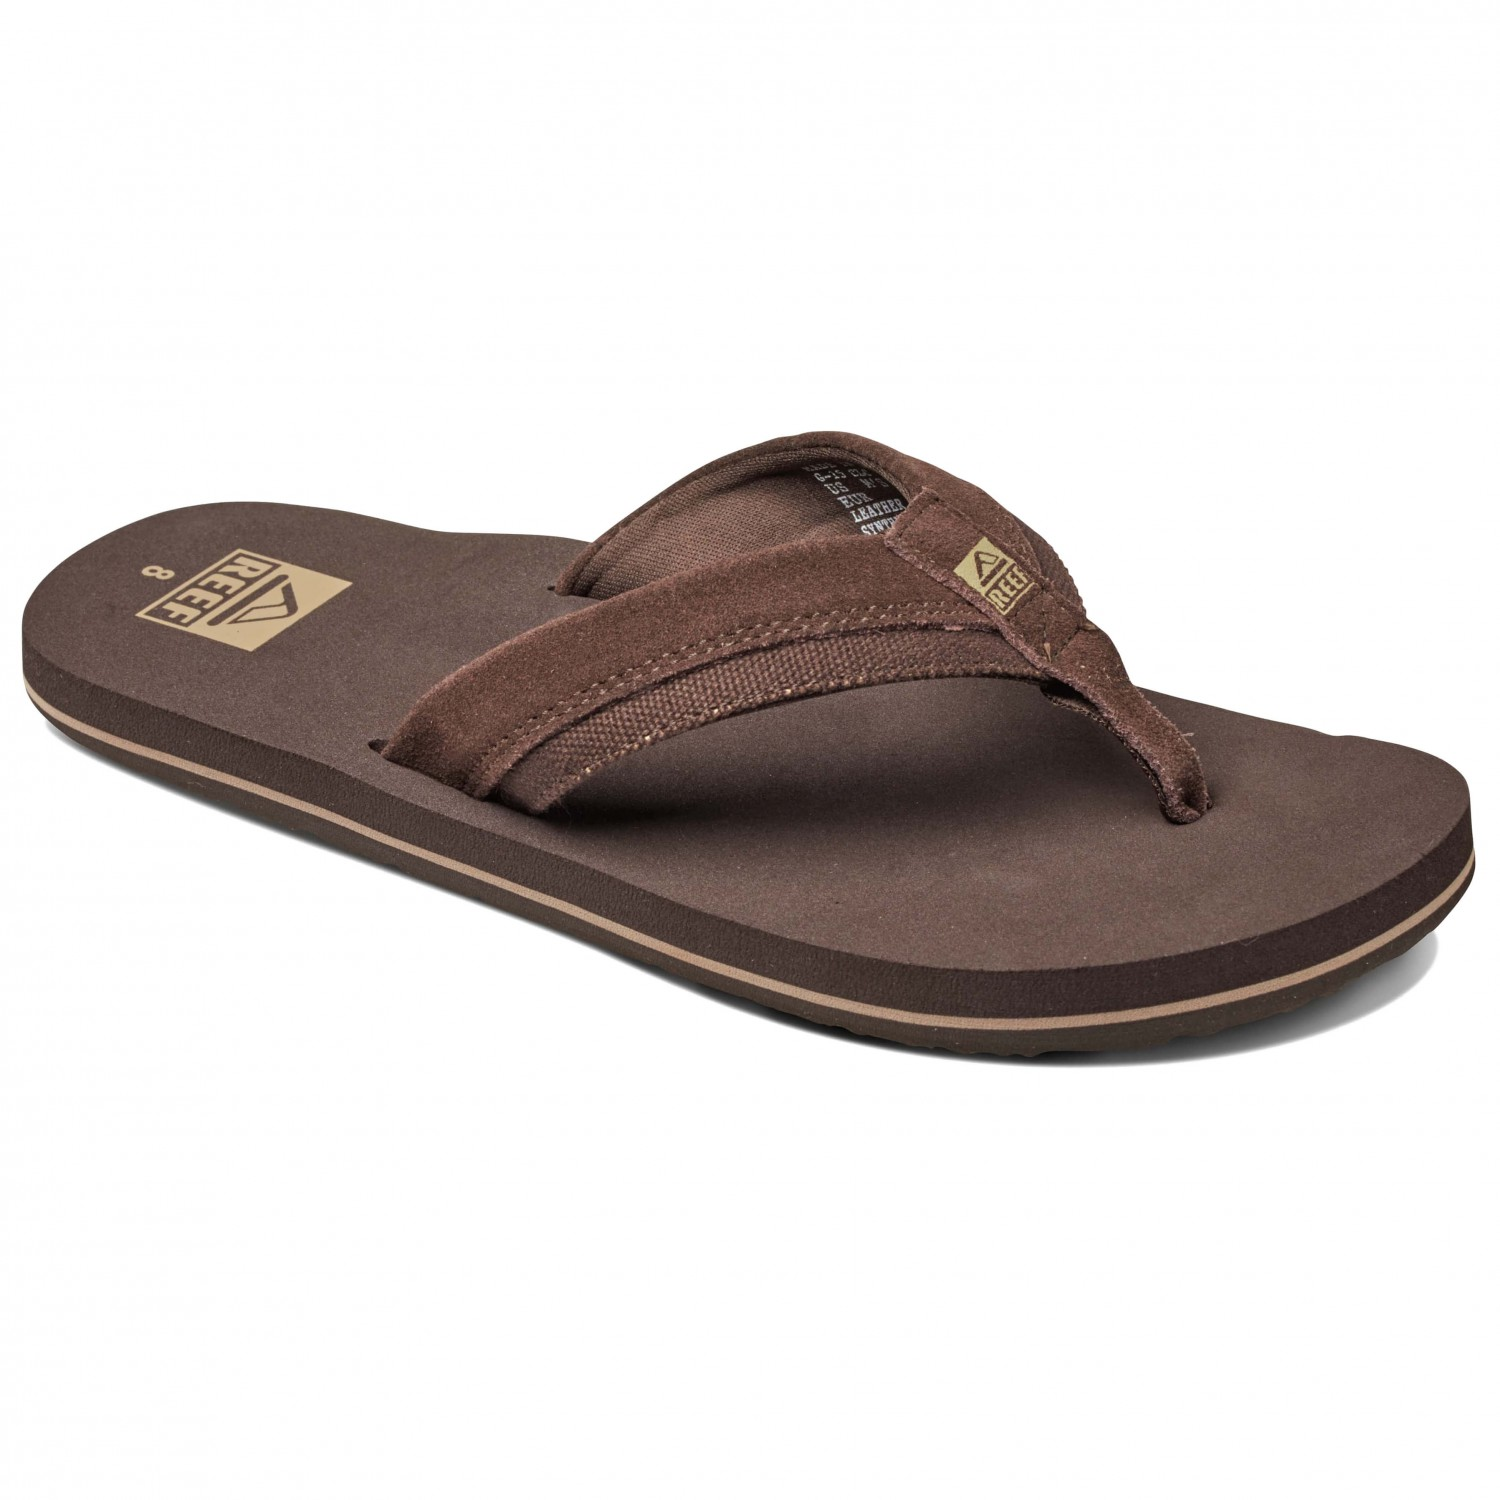 Reef - Stuyak II - Sandalen Brown